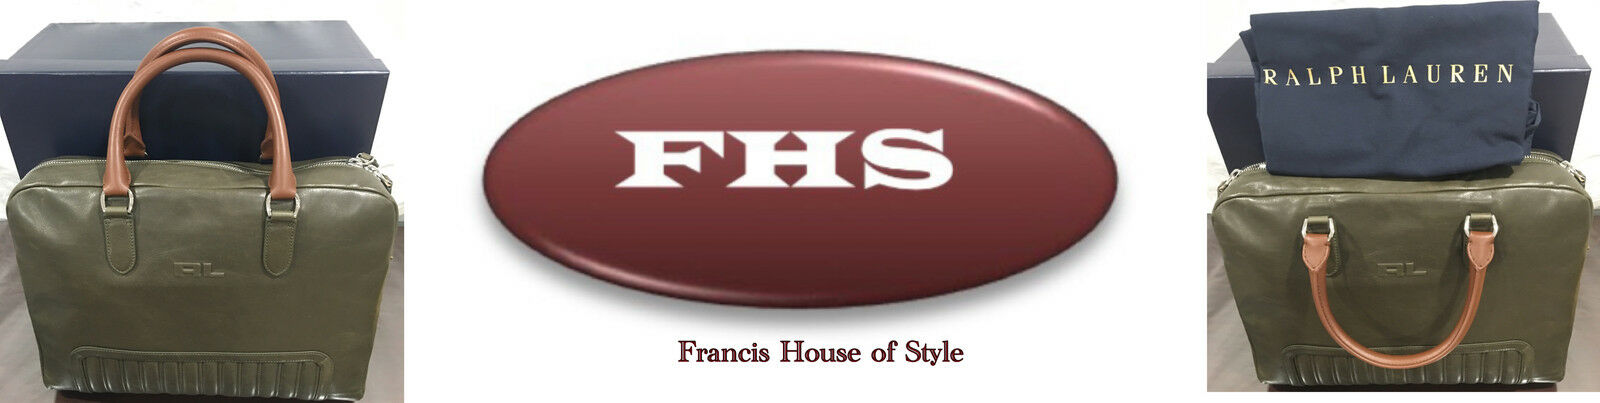 Francis House of Style